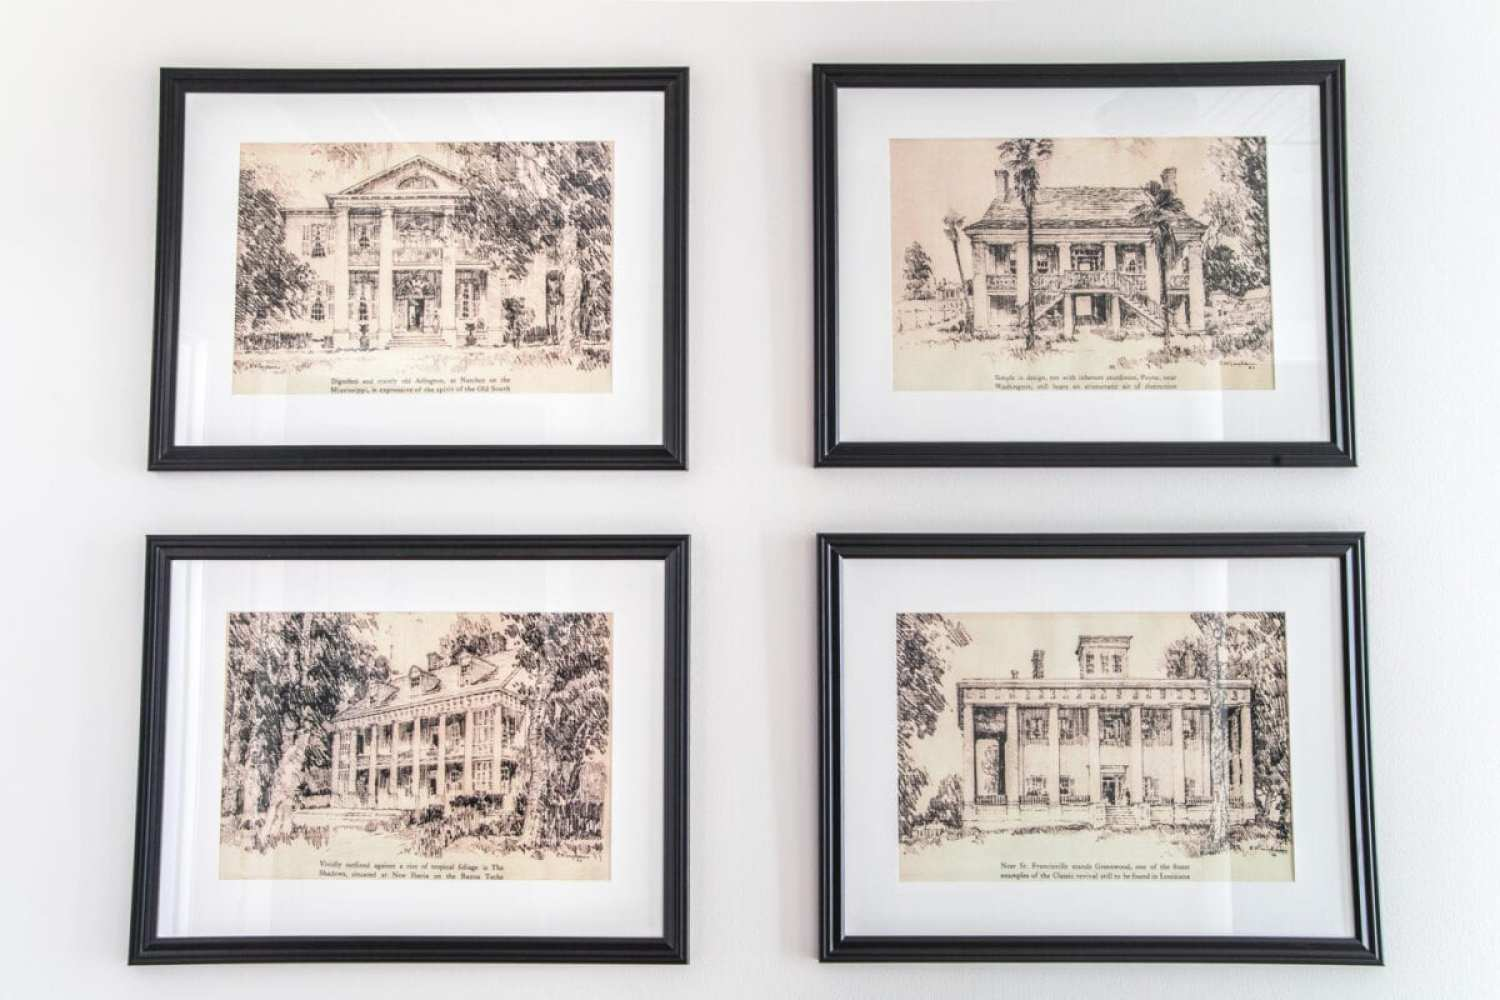 A set of 4 architectural printable art of Southern Antebellum mansions perfect to mat and frame for an antique feel anywhere in your home.#architecturalprints #architecturalart #freeprintableart #freeprintables #freeart #walldecor #hallway